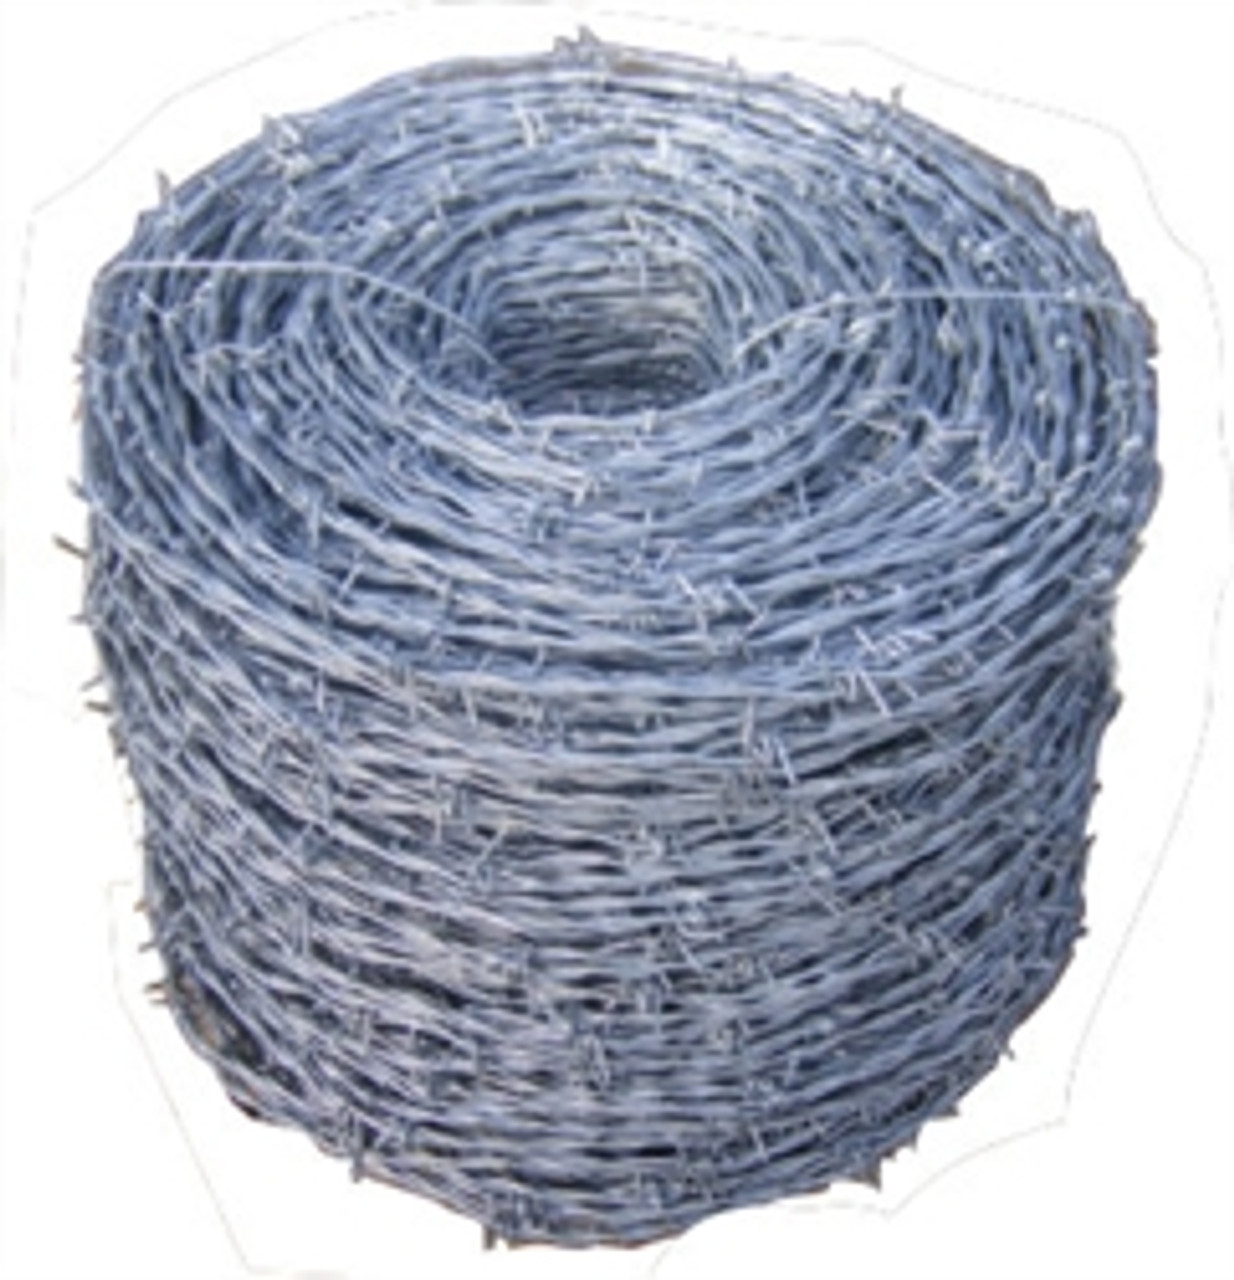 Galvanized 4-Point Barb Wire - 1320' Roll